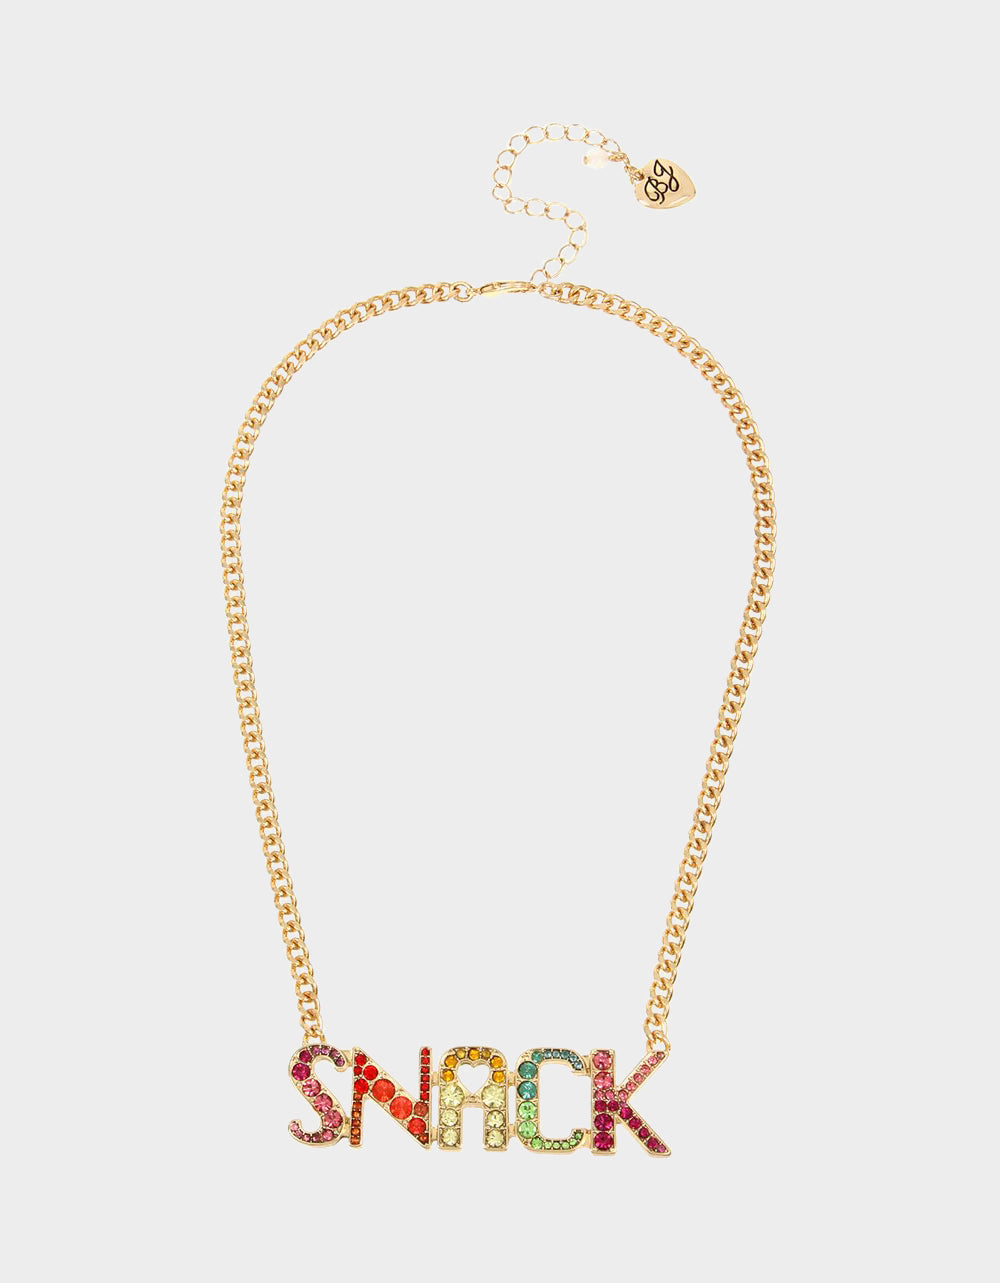 SNACK ATTACK PENDANT MULTI - JEWELRY - Betsey Johnson